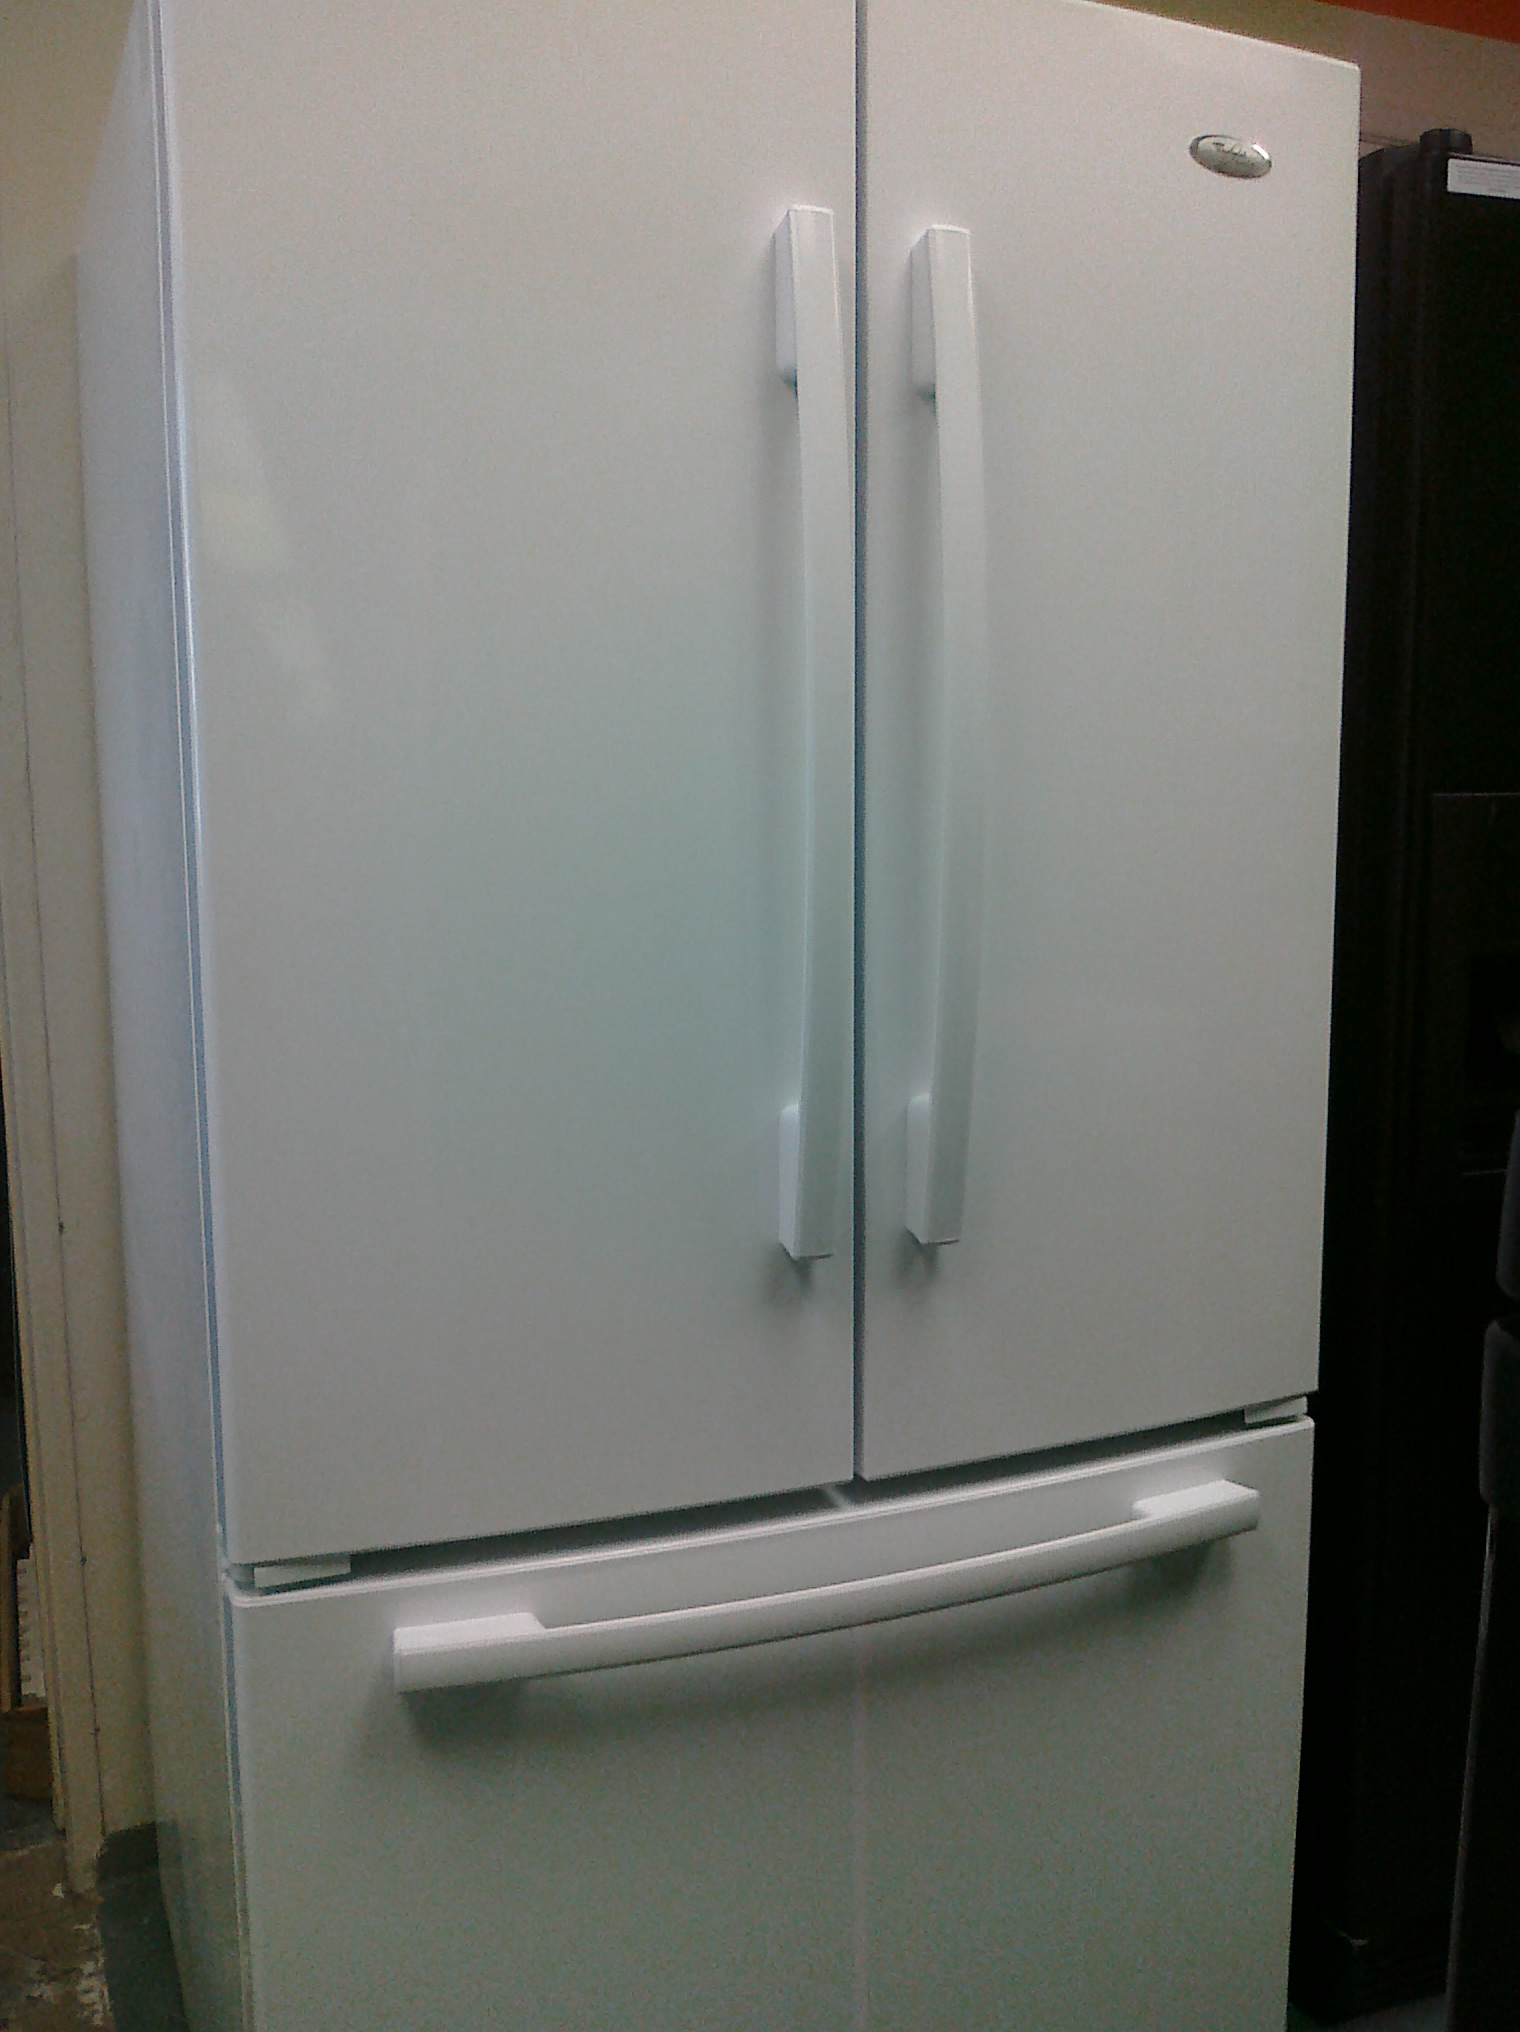 (9) Whirlpool GX5SHDXVQ French Door 25 Cubic Foot Refrigerator With Factory Installed Ice Maker, White